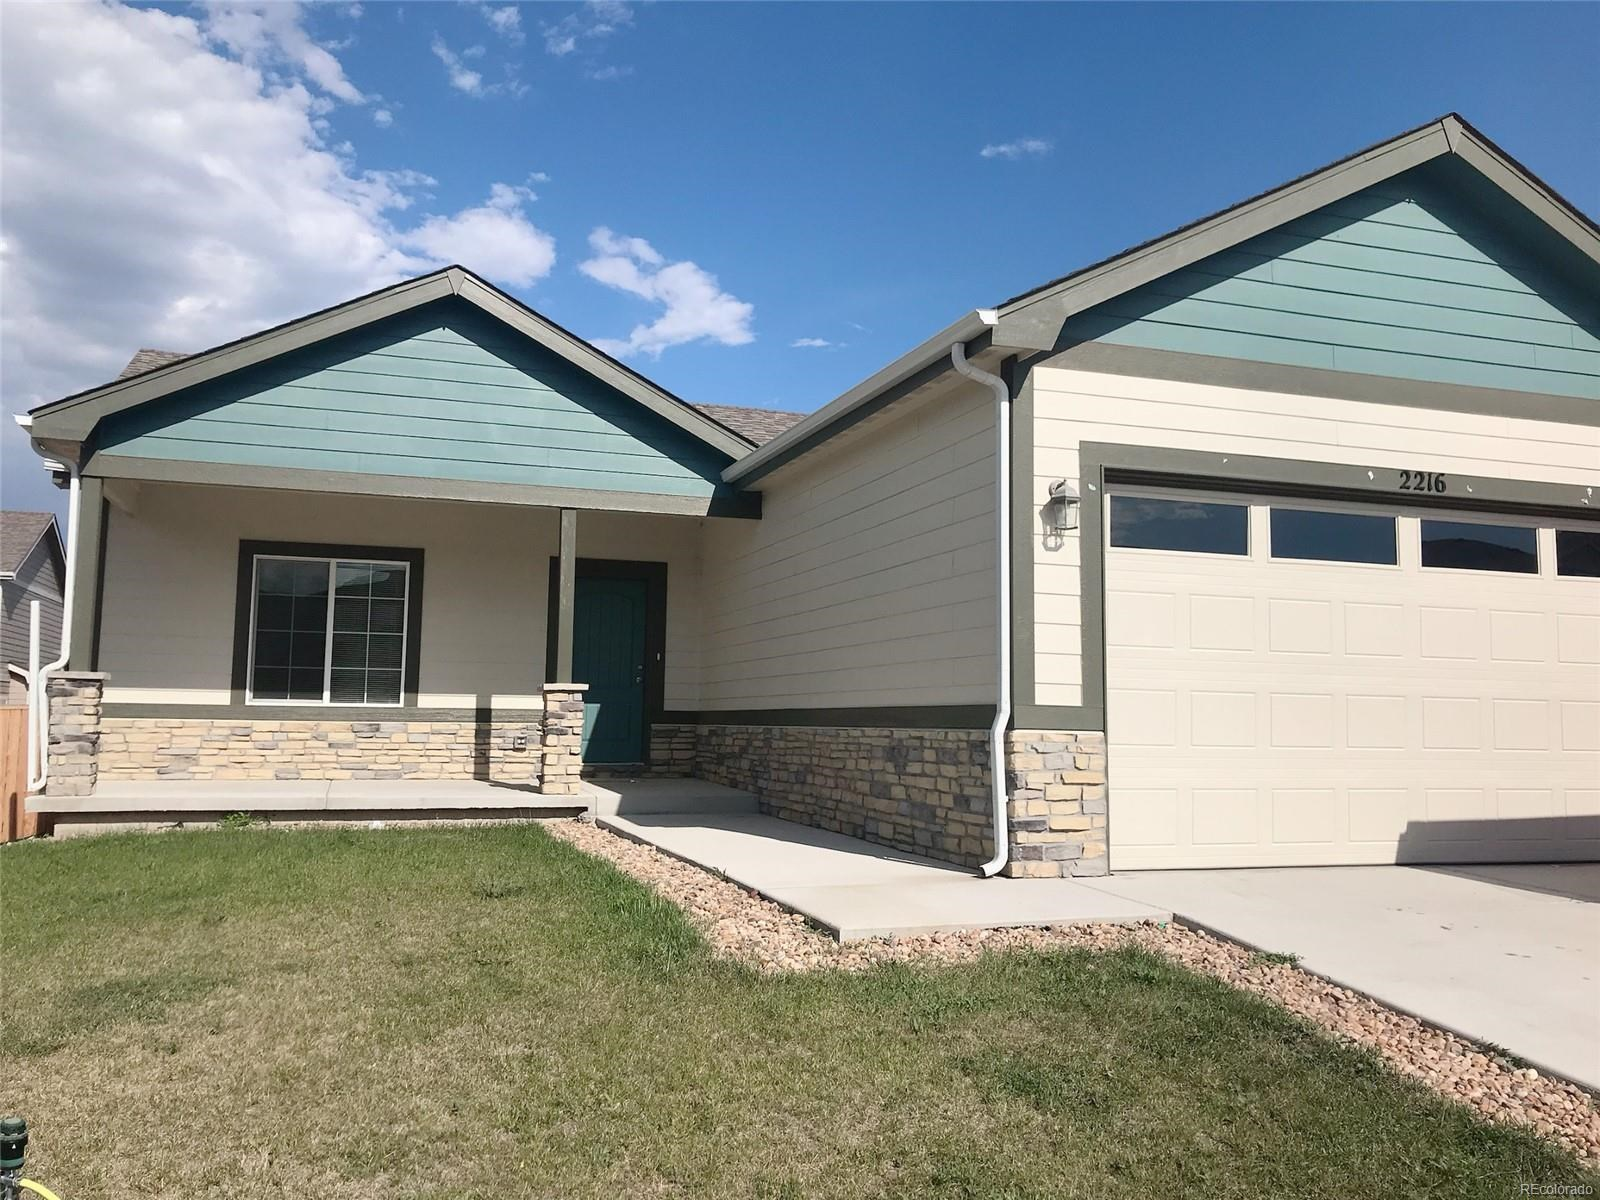 MLS# 1884000 - 1 - 2216 73rd Avenue Place, Greeley, CO 80634